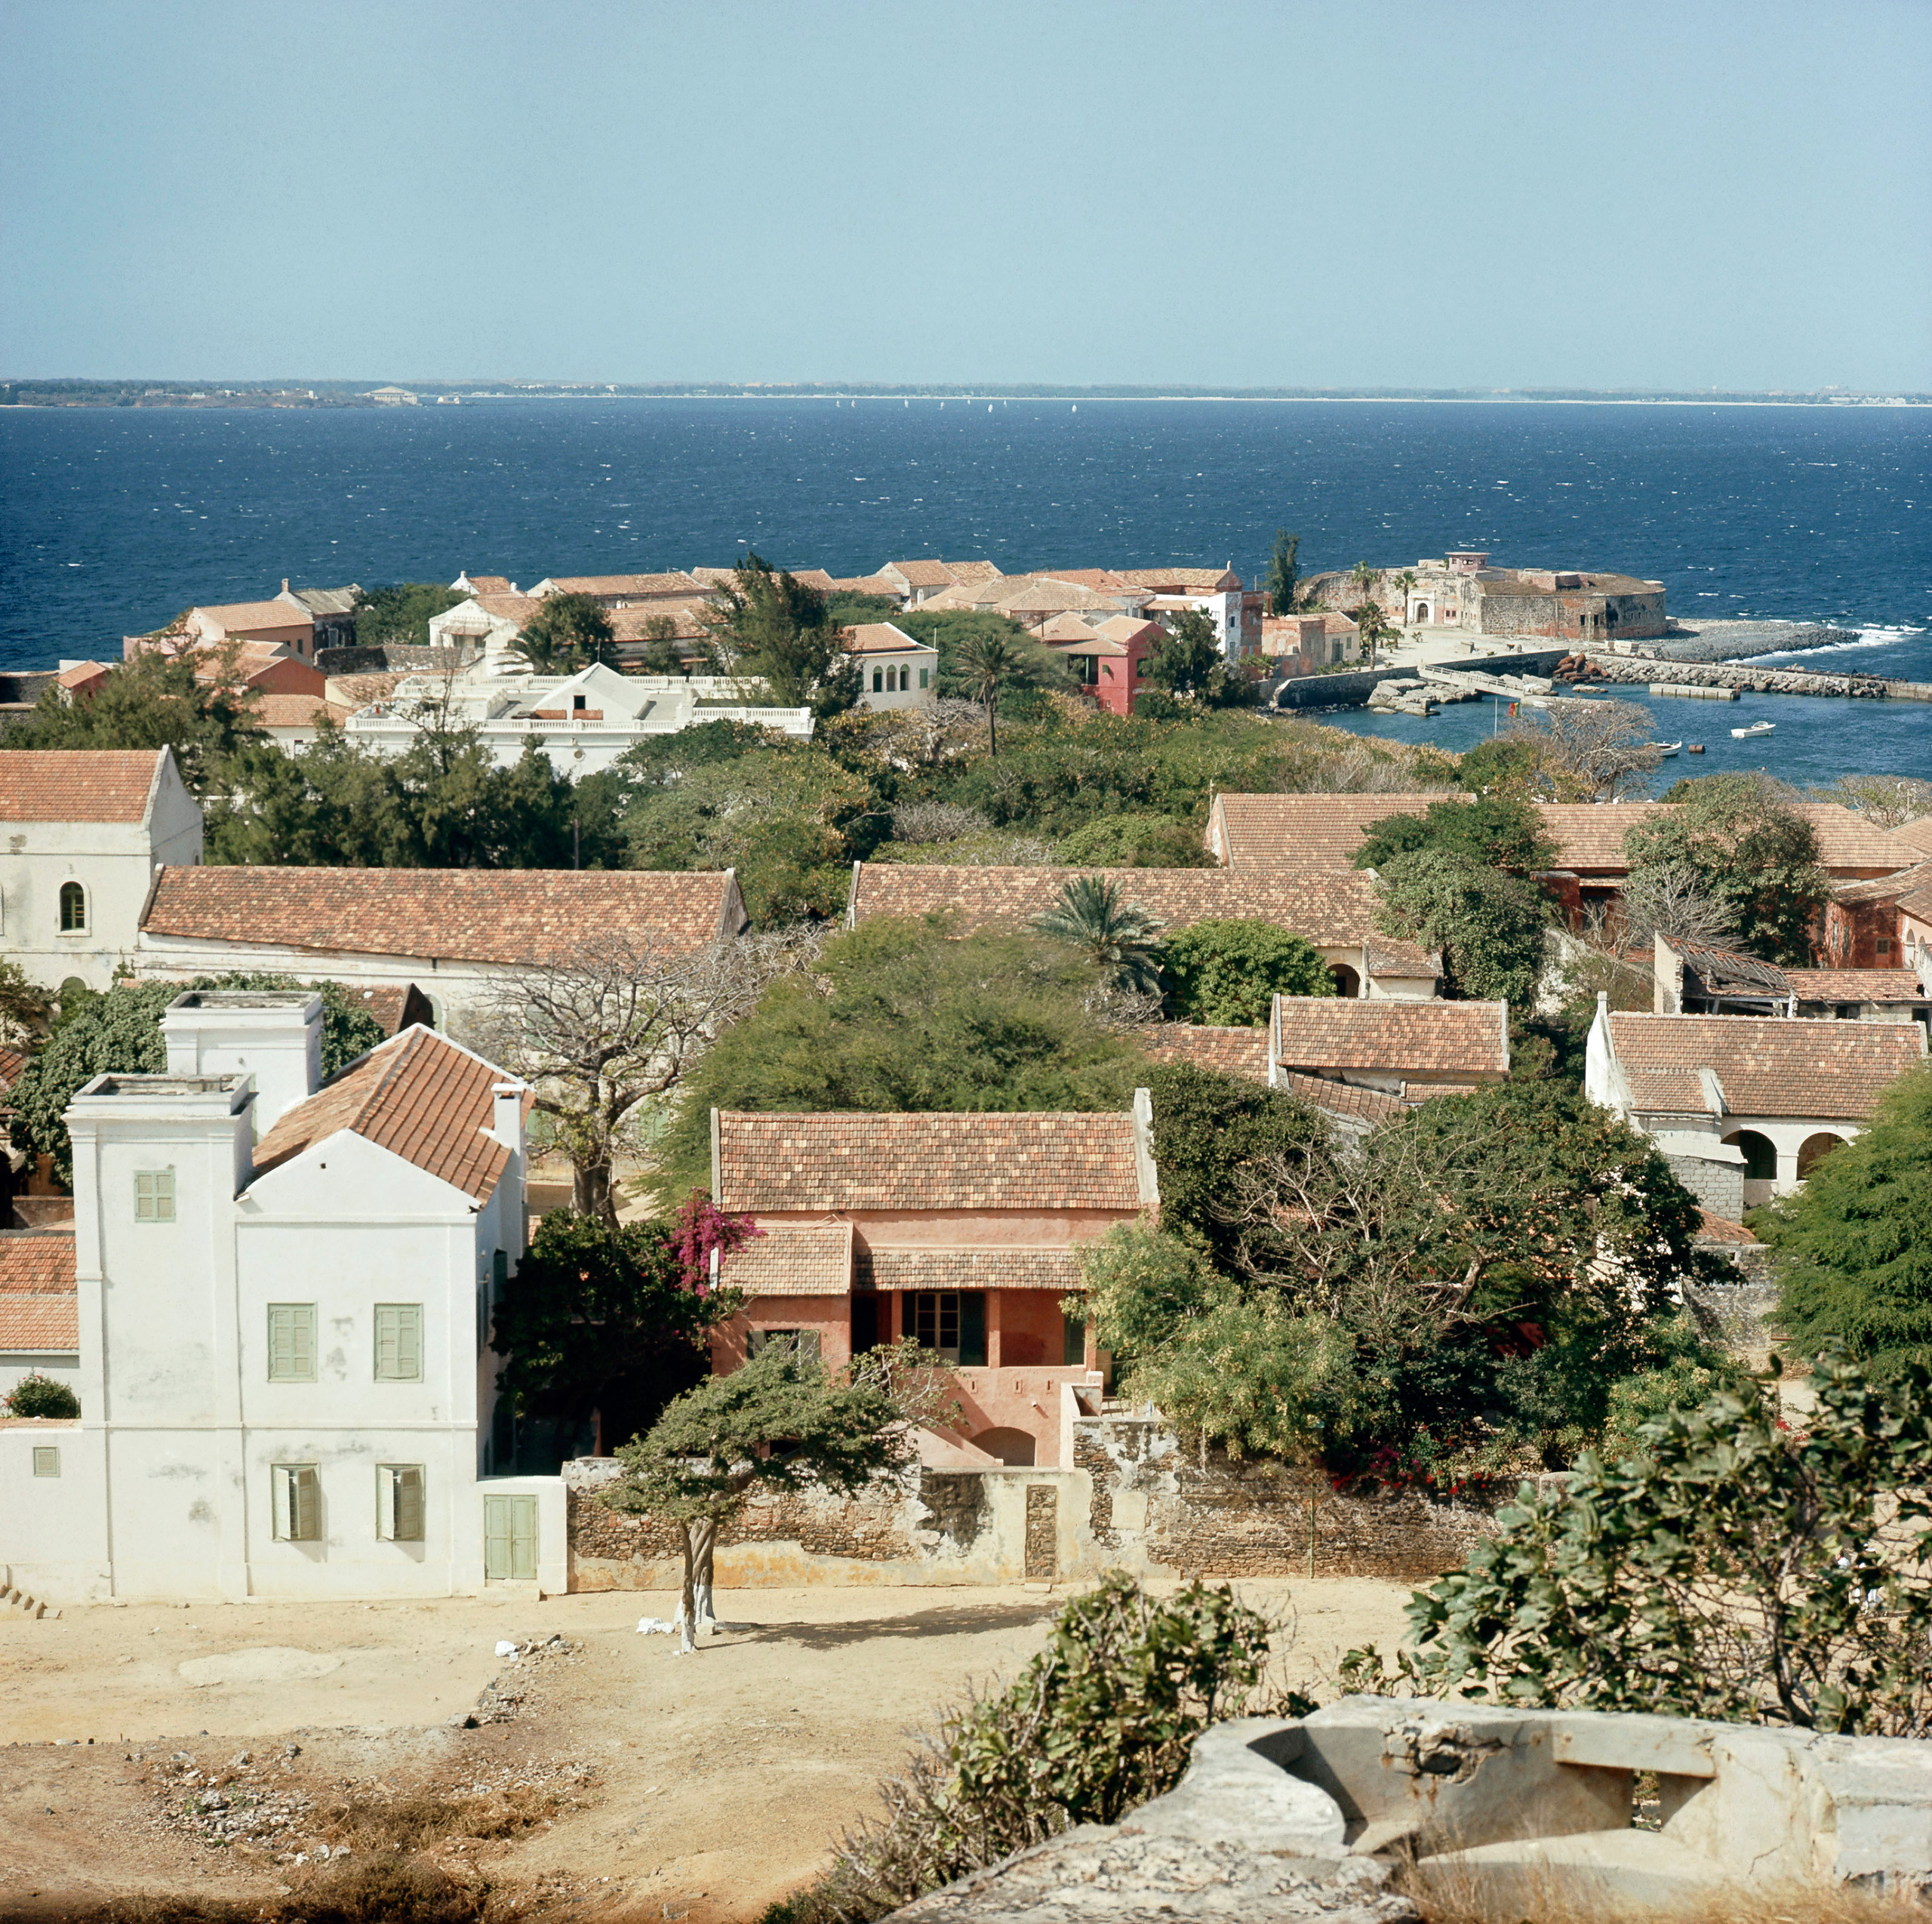 View of the town on Goree Island, off Cape Verde, an important selling-station for the Atlantic slave trade, Senegal, Africa.